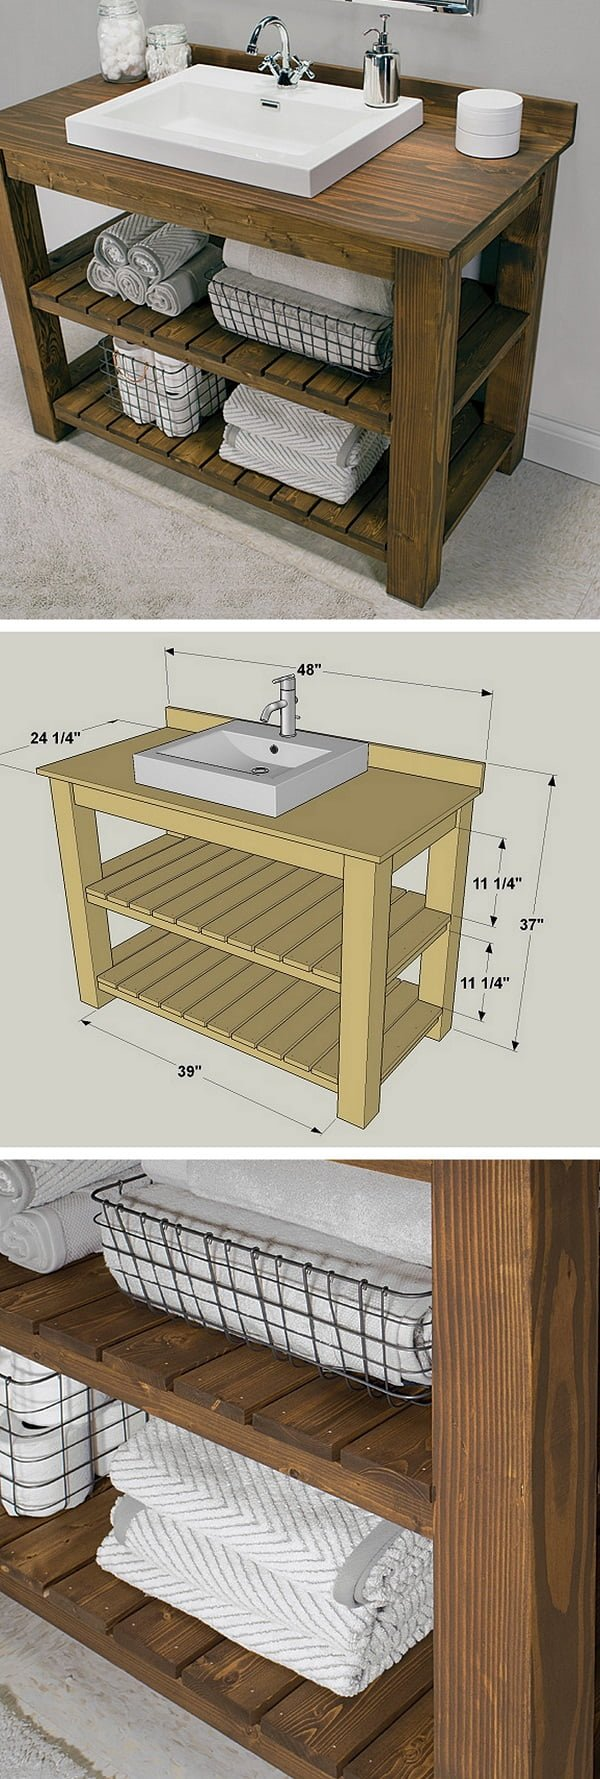 How to make a #DIY rustic bathroom vanity